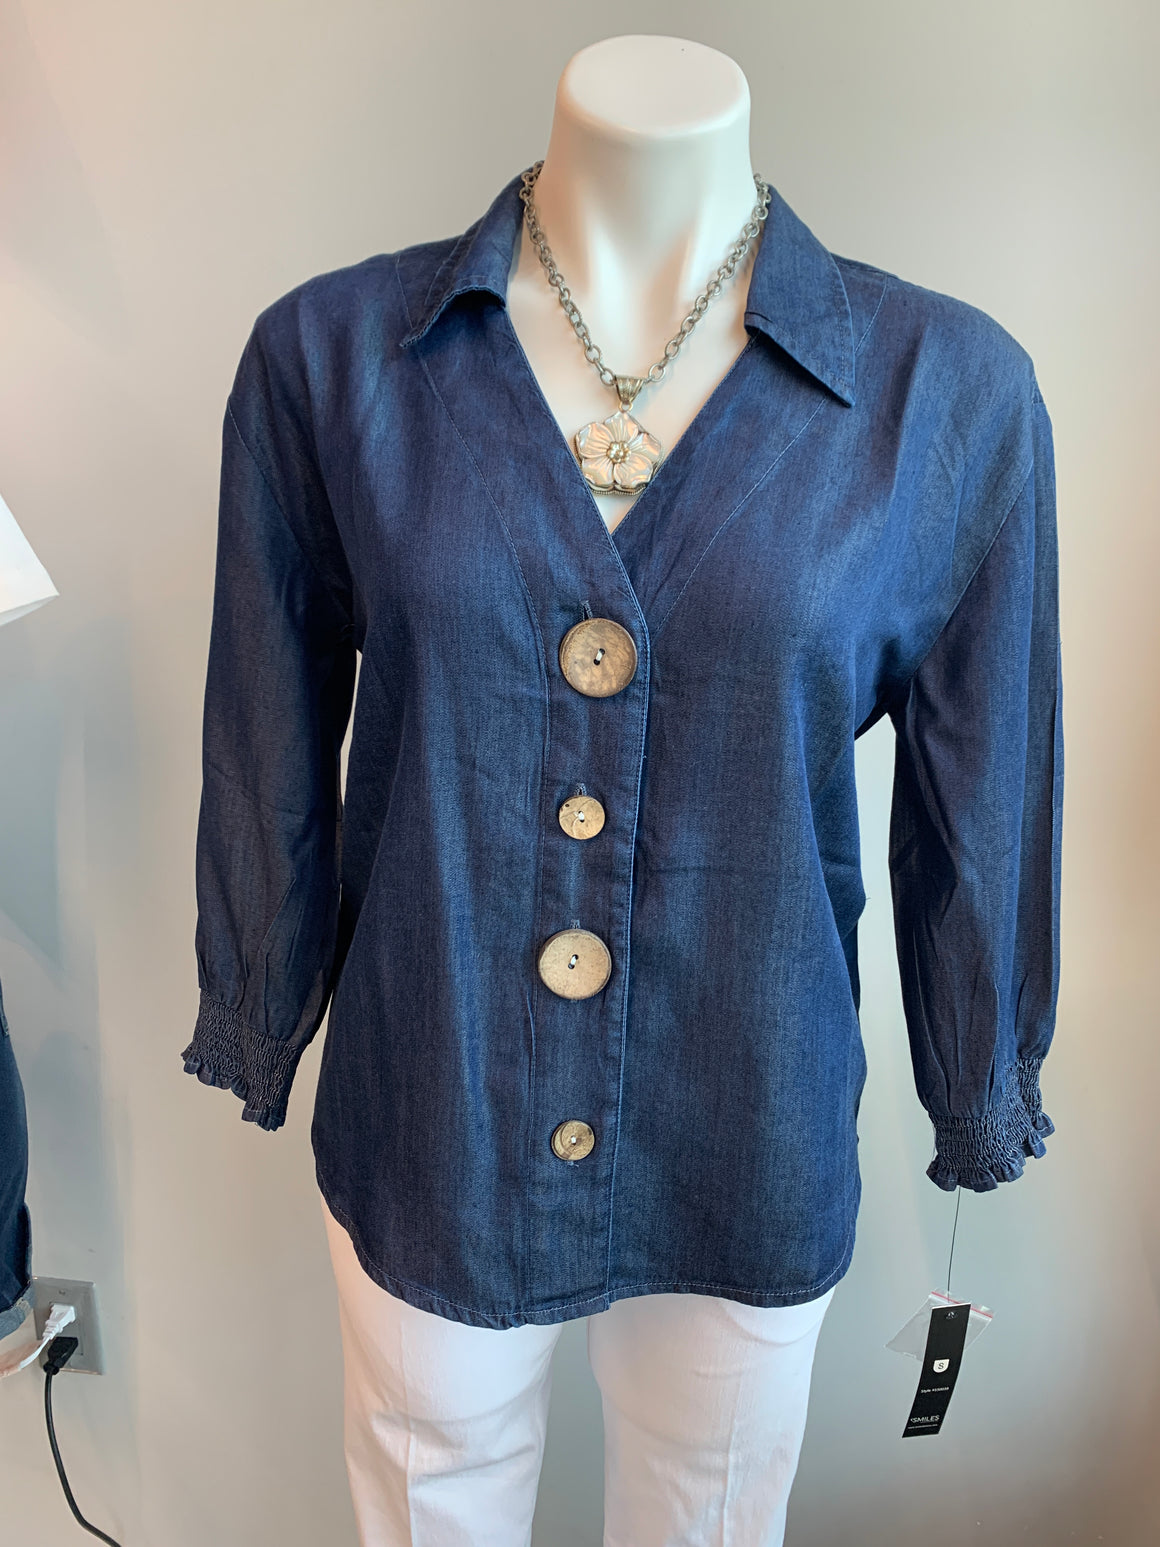 Denim Collared V Neck with elastic sleeve cuff